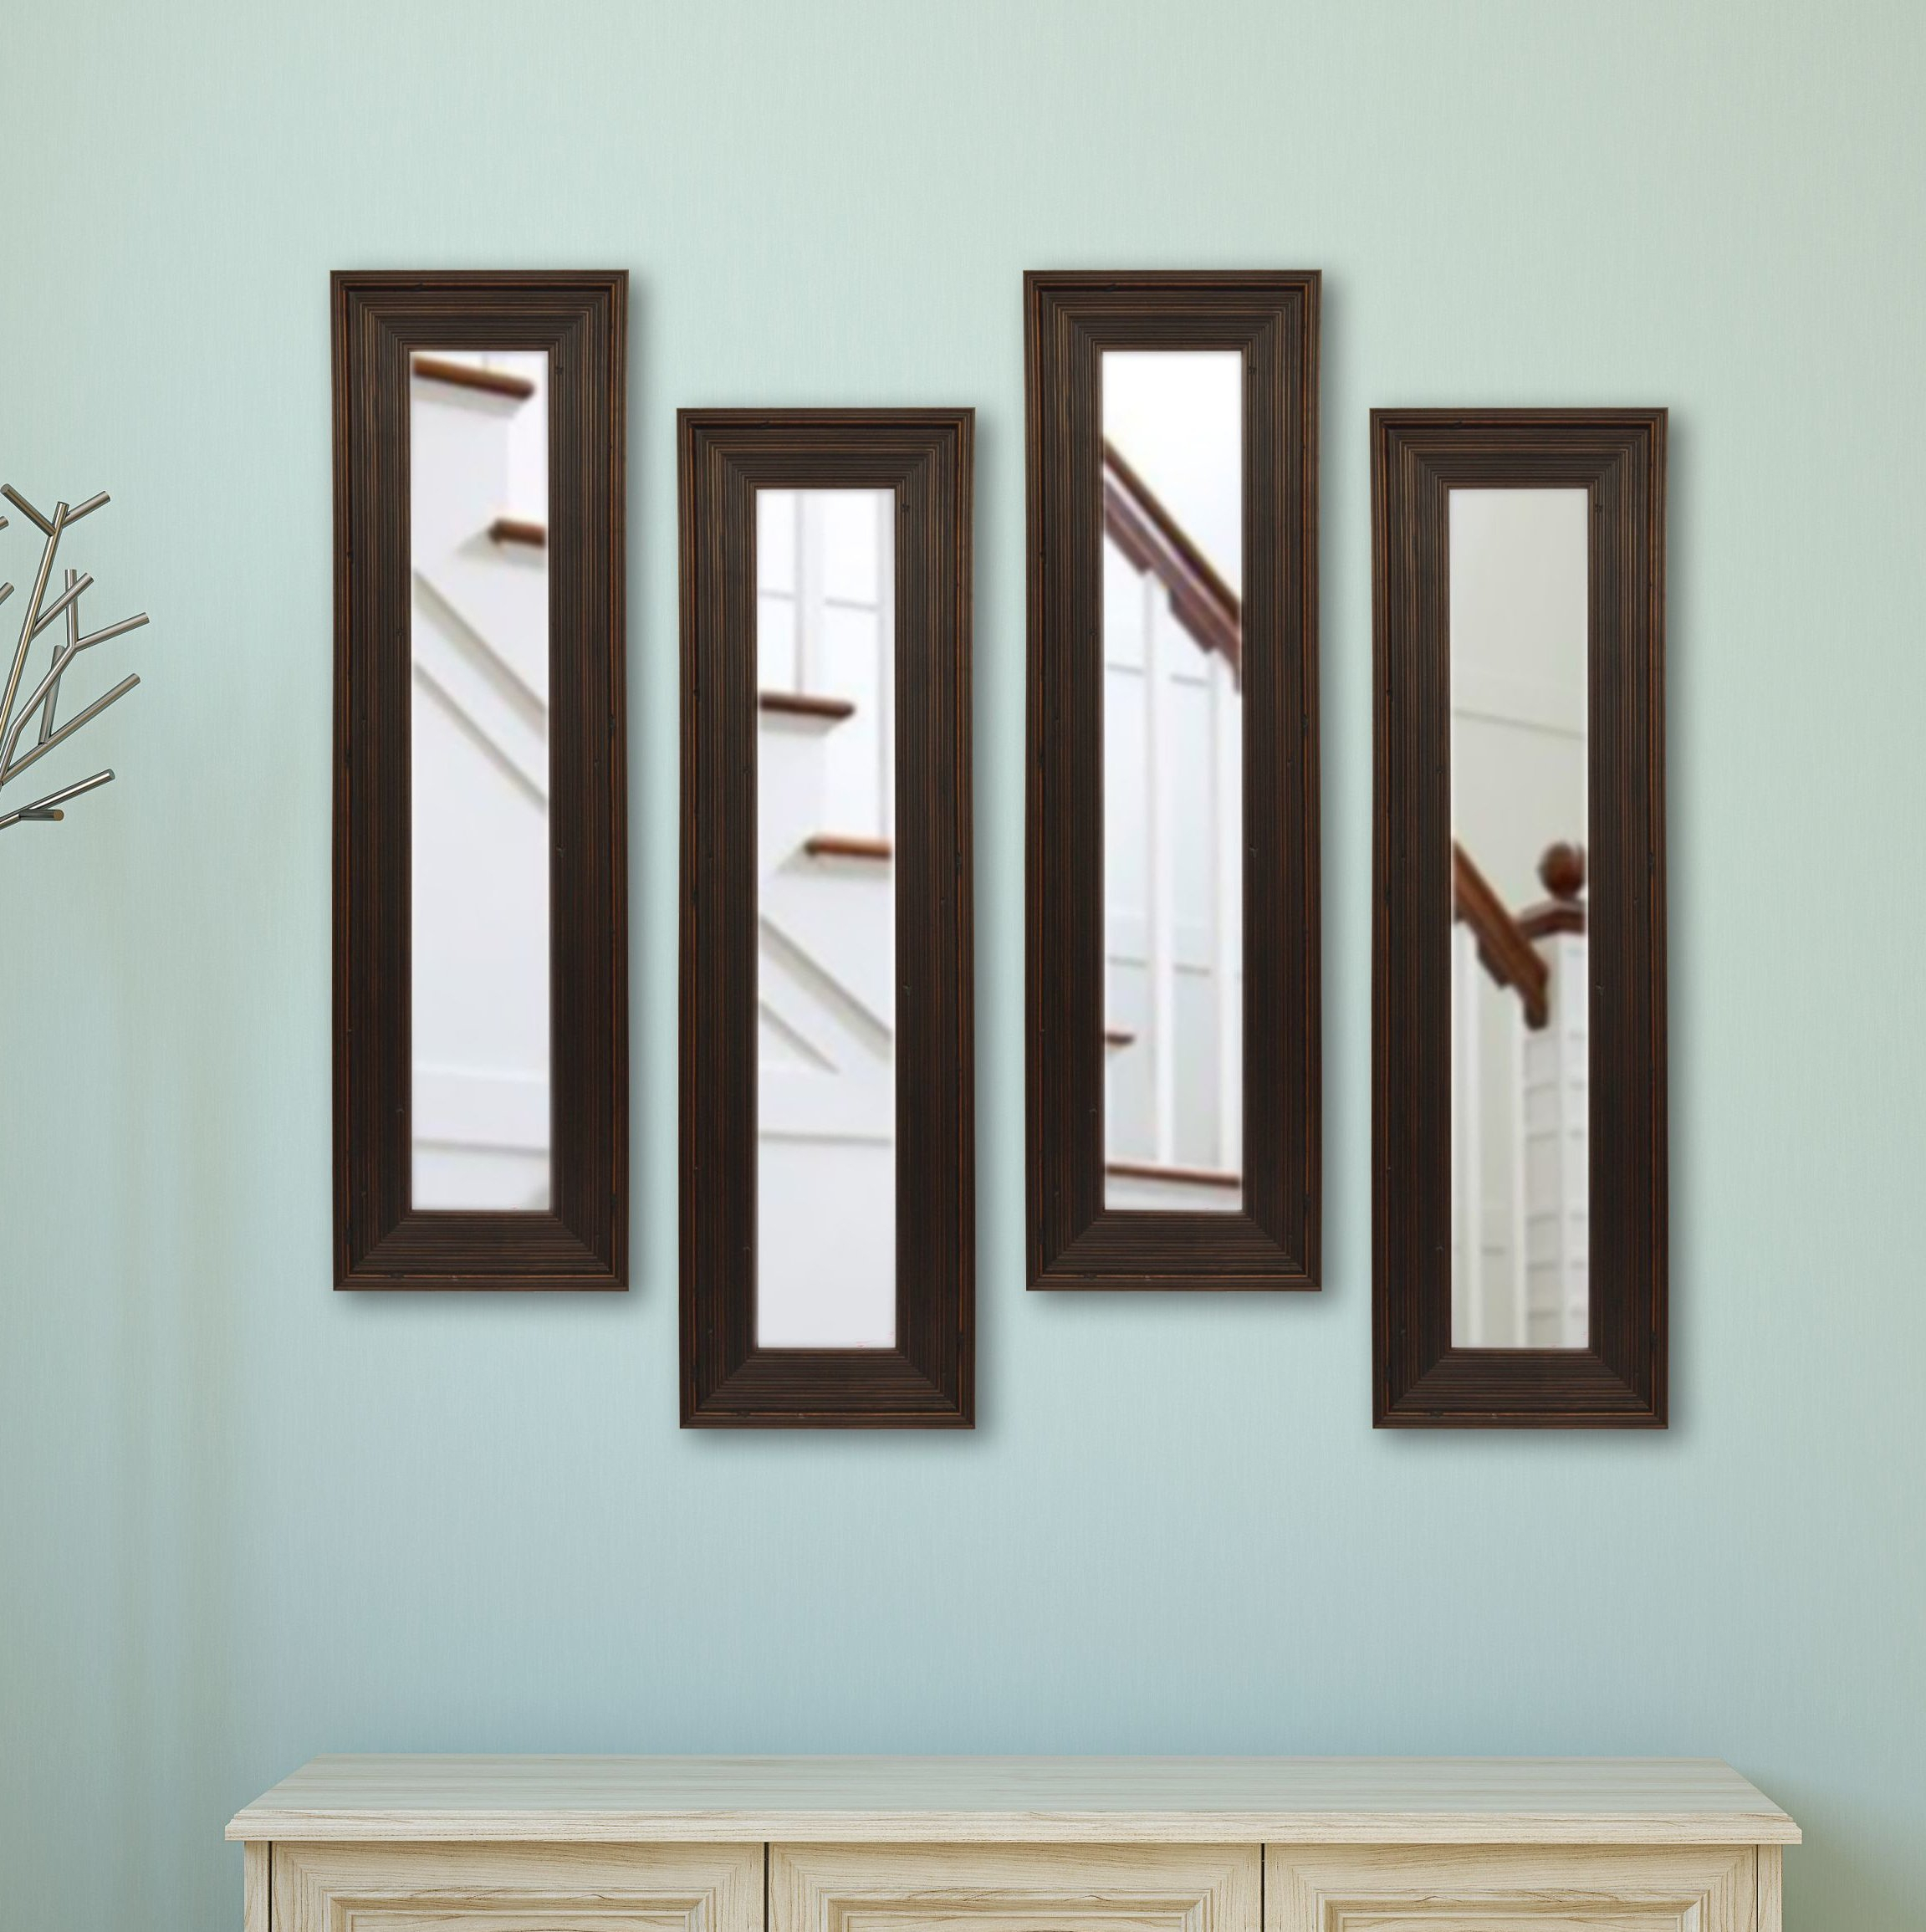 4 Piece Kincannon Modern & Contemporary Mirror Set For 4 Piece Wall Decor Sets By Charlton Home (View 7 of 30)